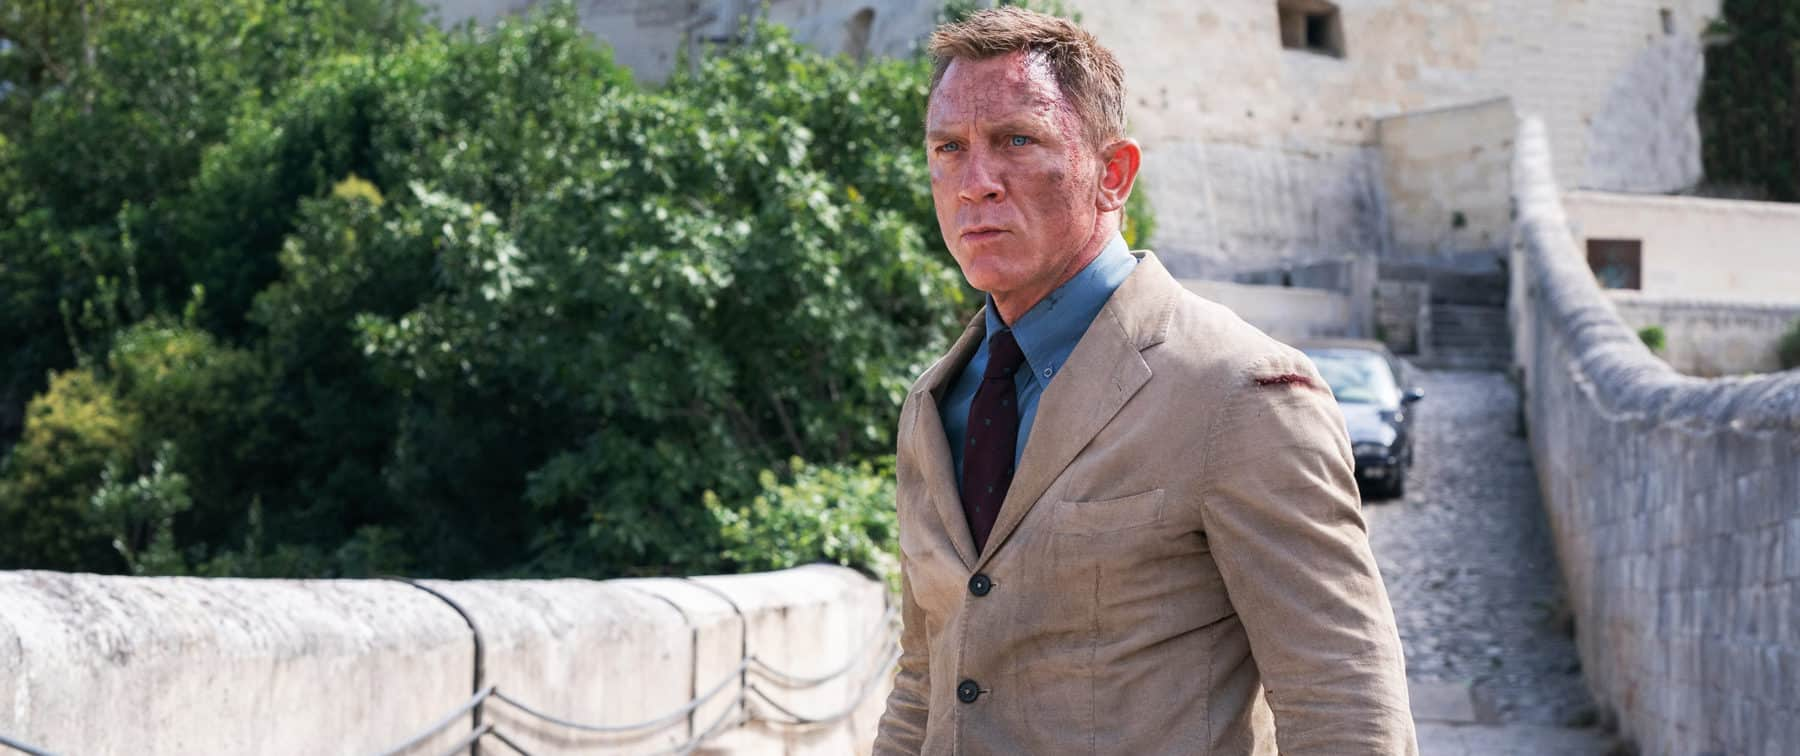 No Time to Die, Next James Bond Film, Delayed Because of Coronavirus